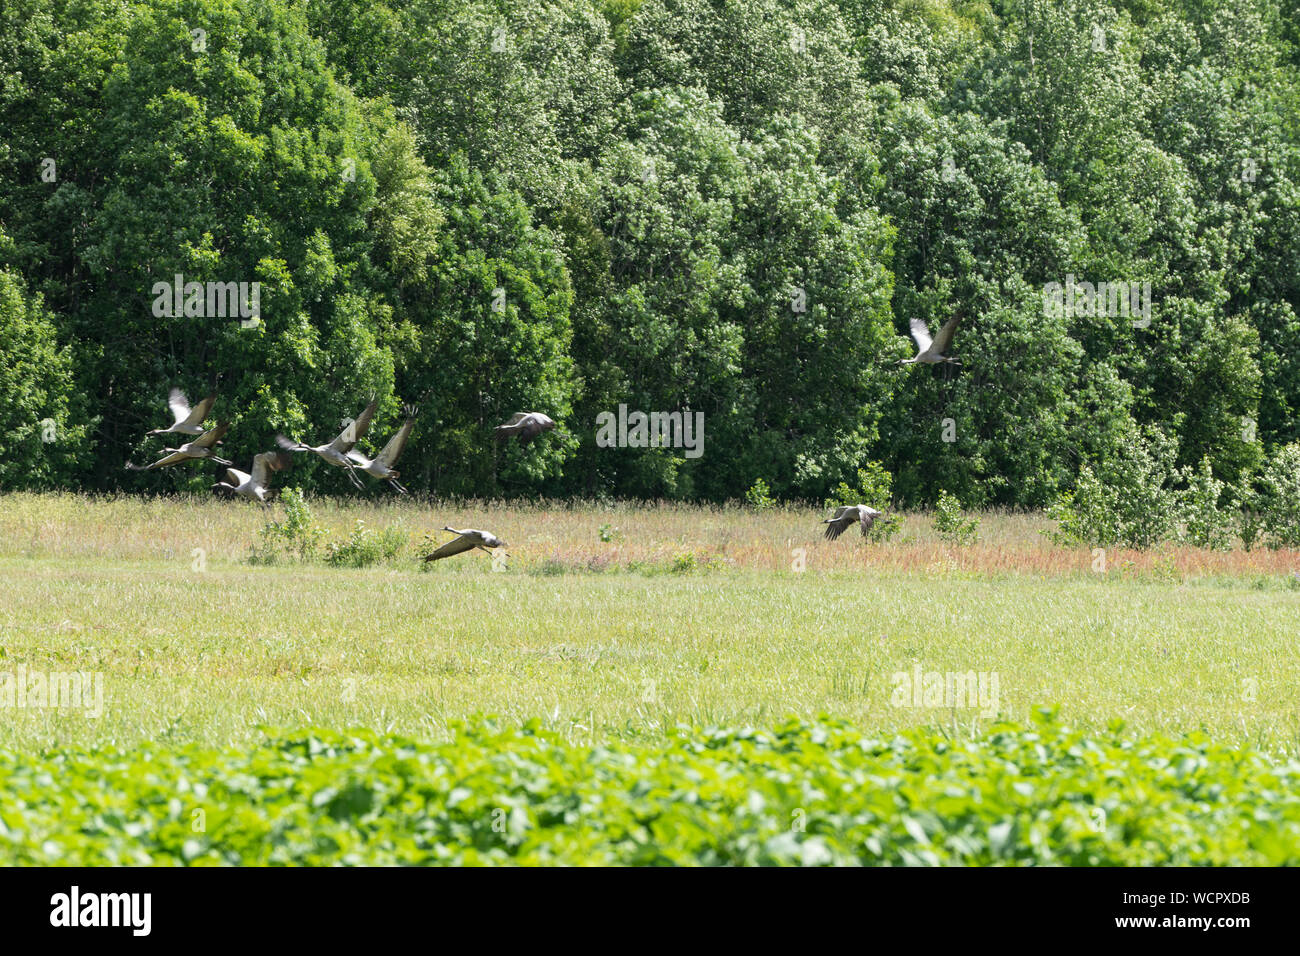 Grus grus. Common crane rest on the edge of the forest. Birds on the meadow. Eurasian crane  rising flight, natural environment background. Stock Photo